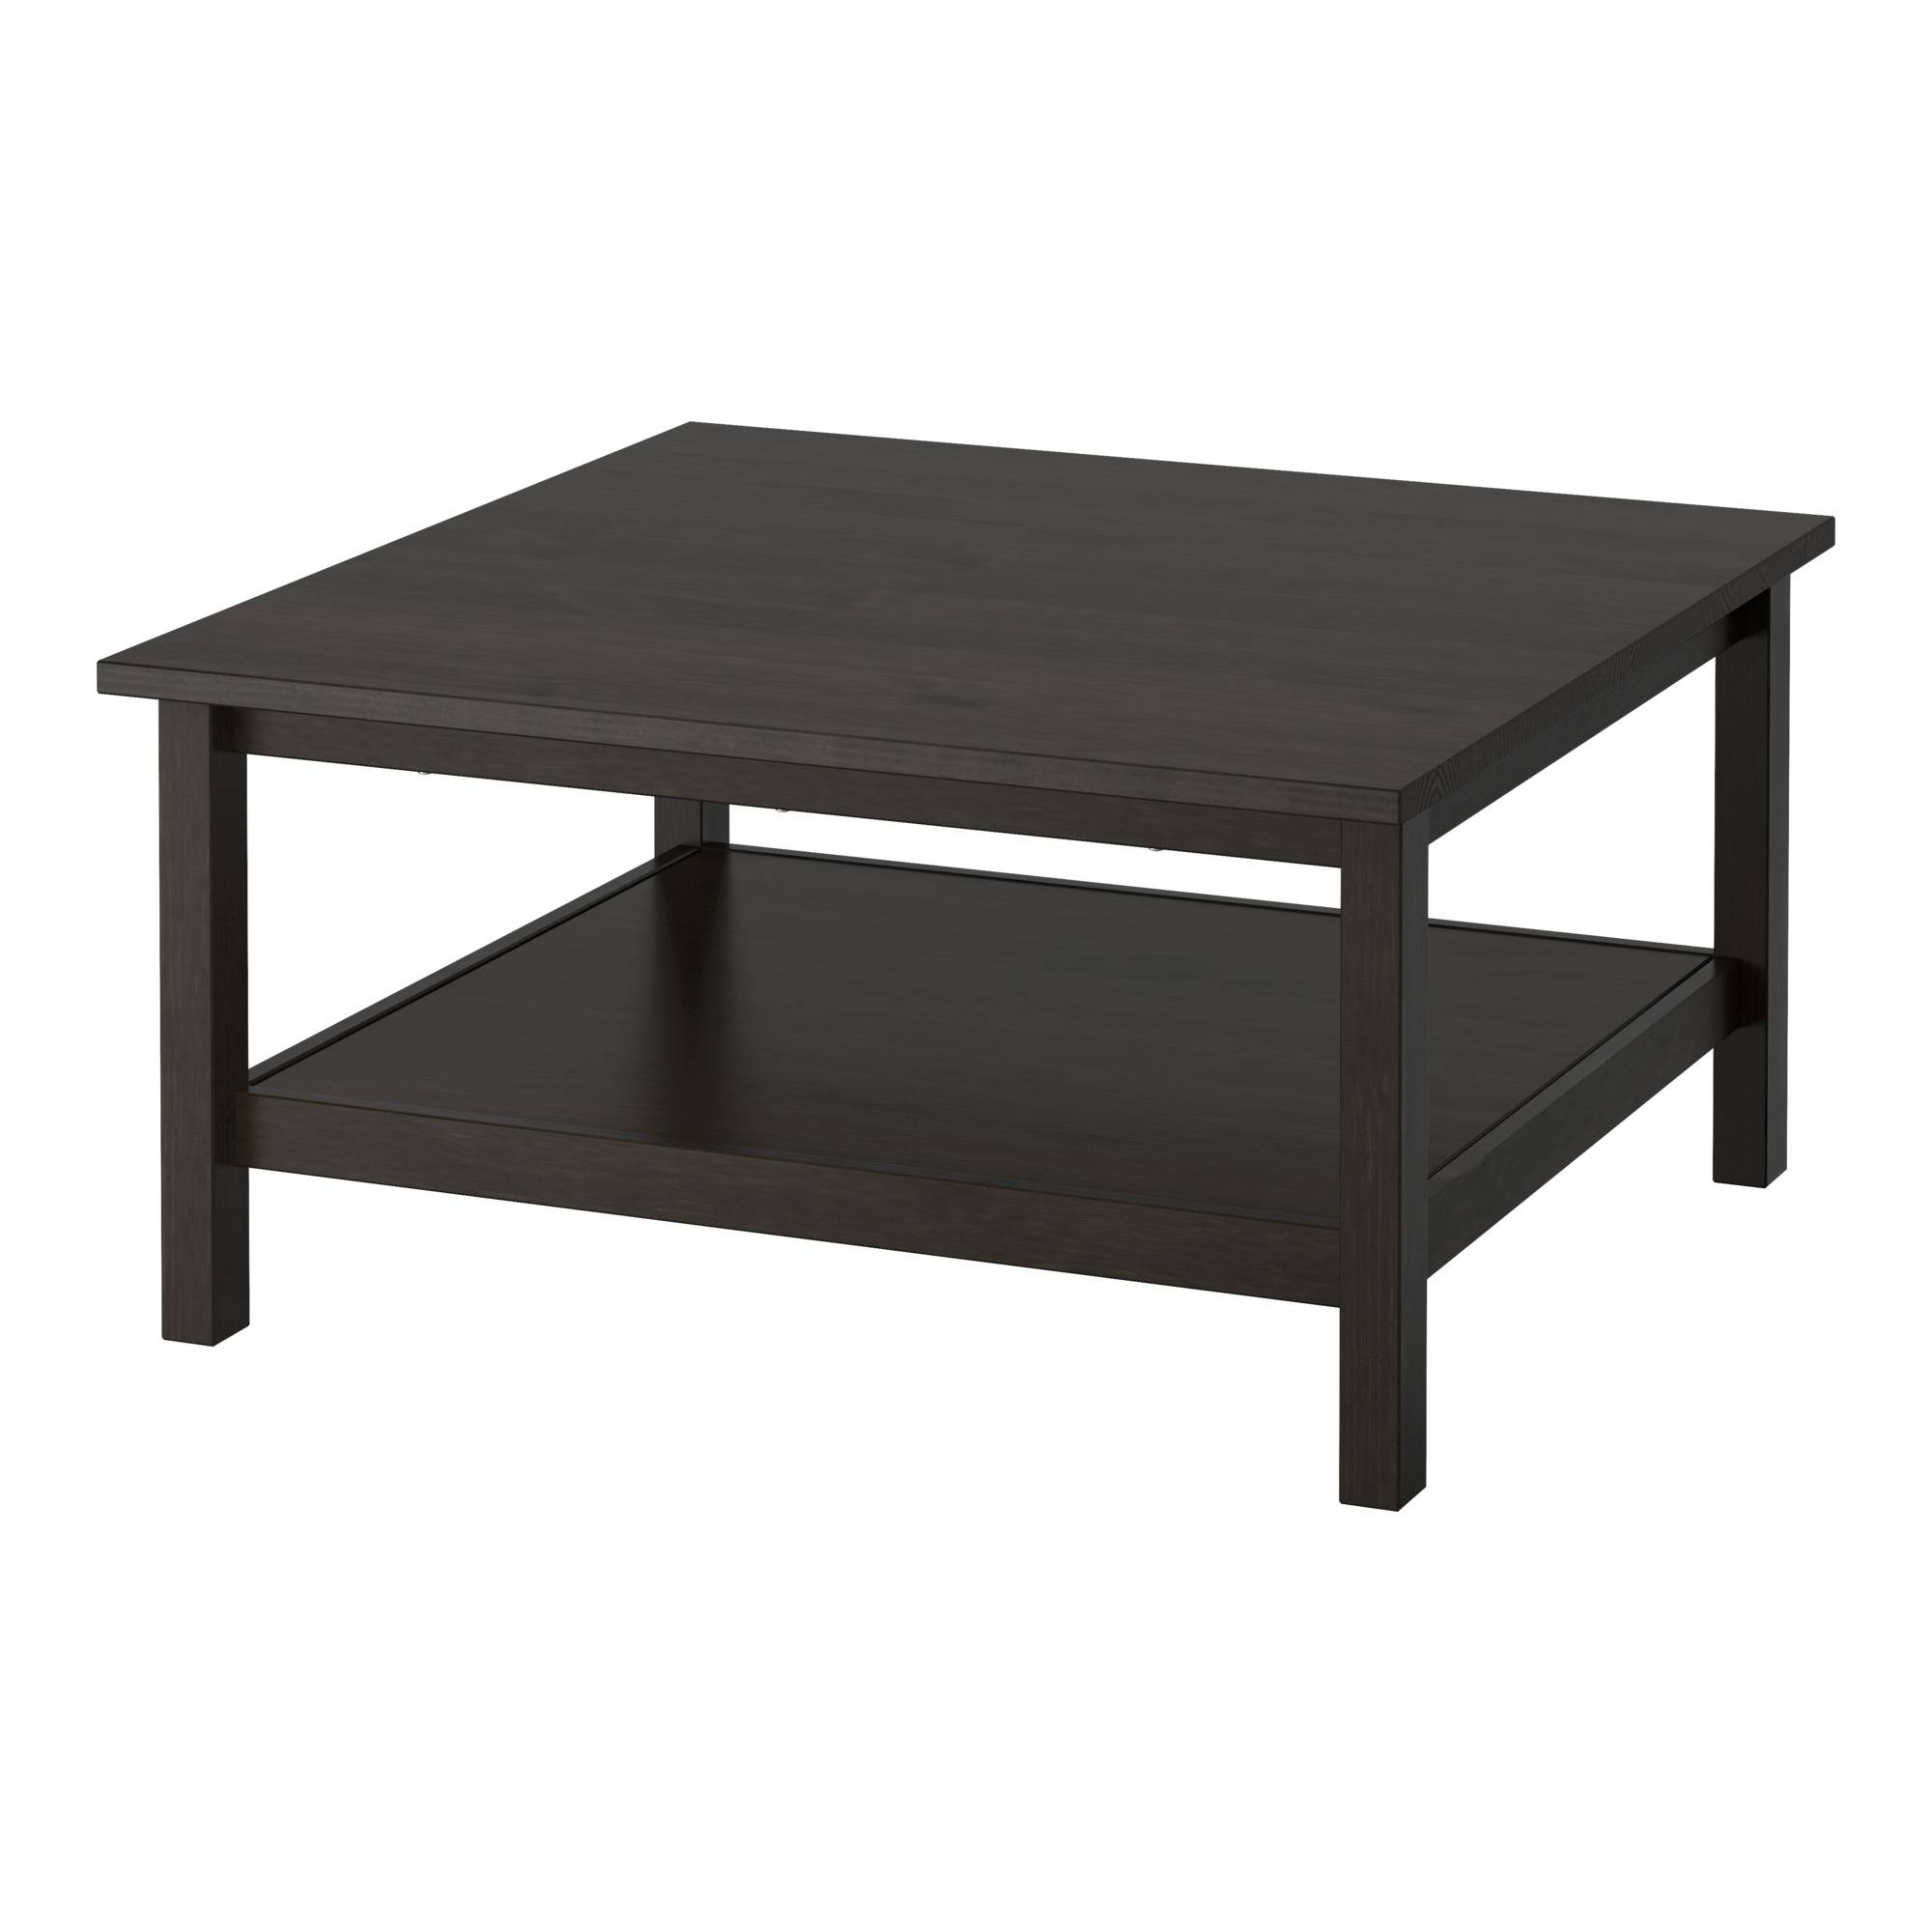 Hemnes Coffee Table - Black-Brown - Ikea with Square Black Coffee Tables (Image 19 of 30)